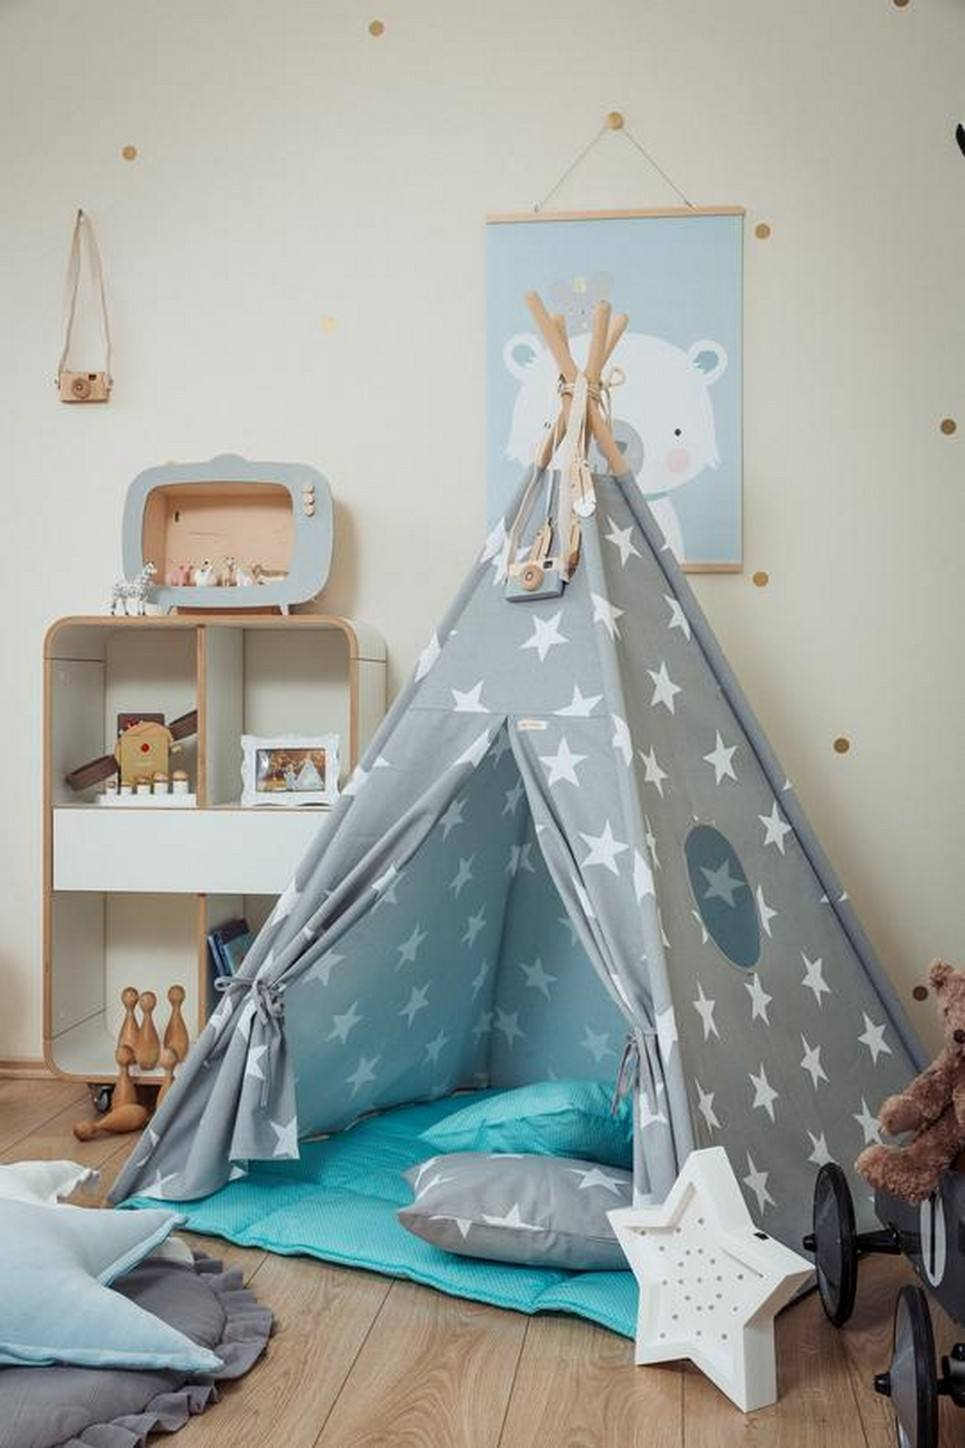 Large Stars Children's Teepee Set with Sky Blue Mat